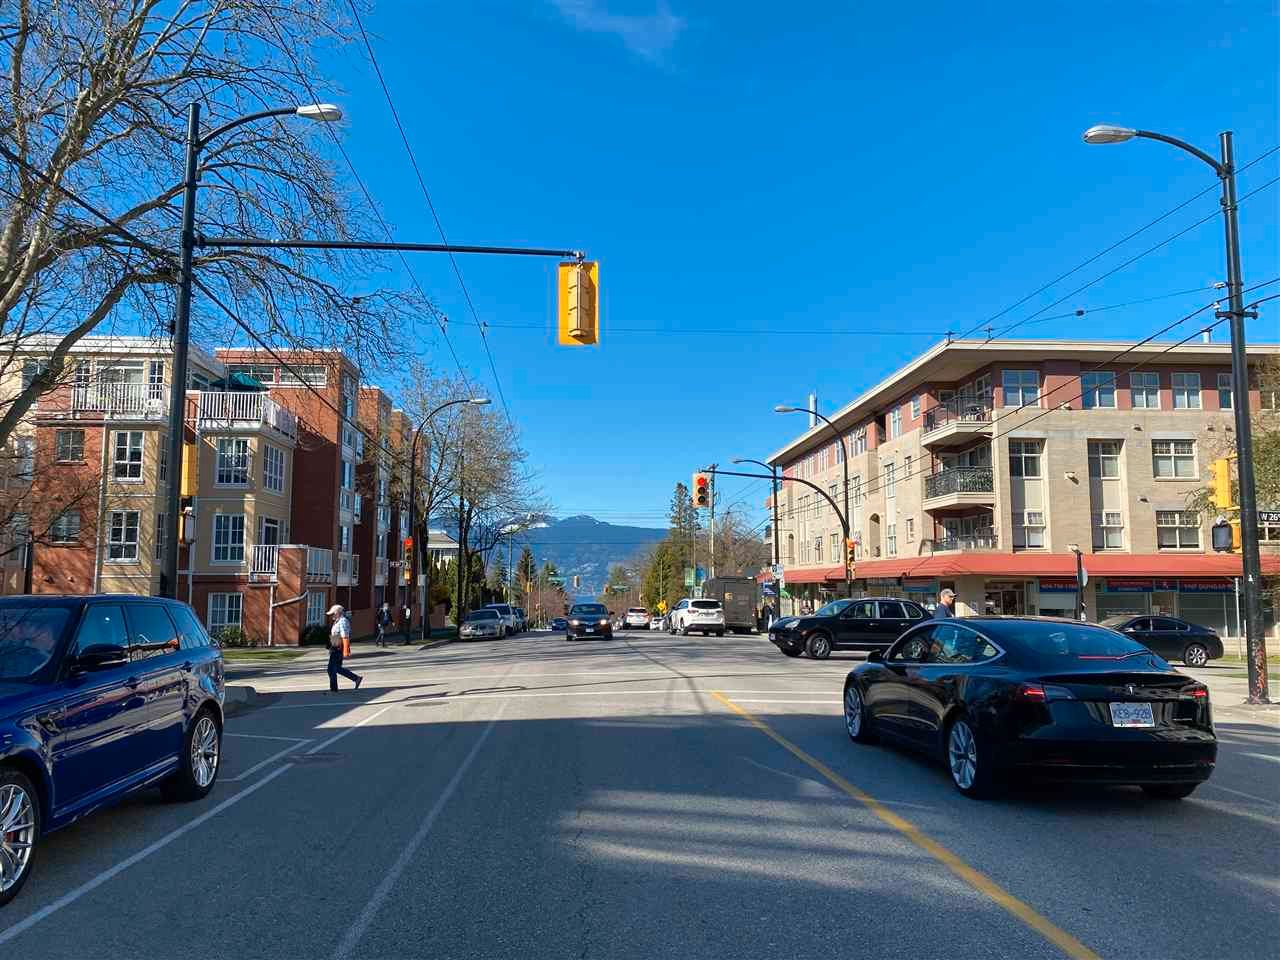 Main Photo: 3591 W 26TH Avenue in Vancouver: Dunbar Retail for sale (Vancouver West)  : MLS®# C8038317